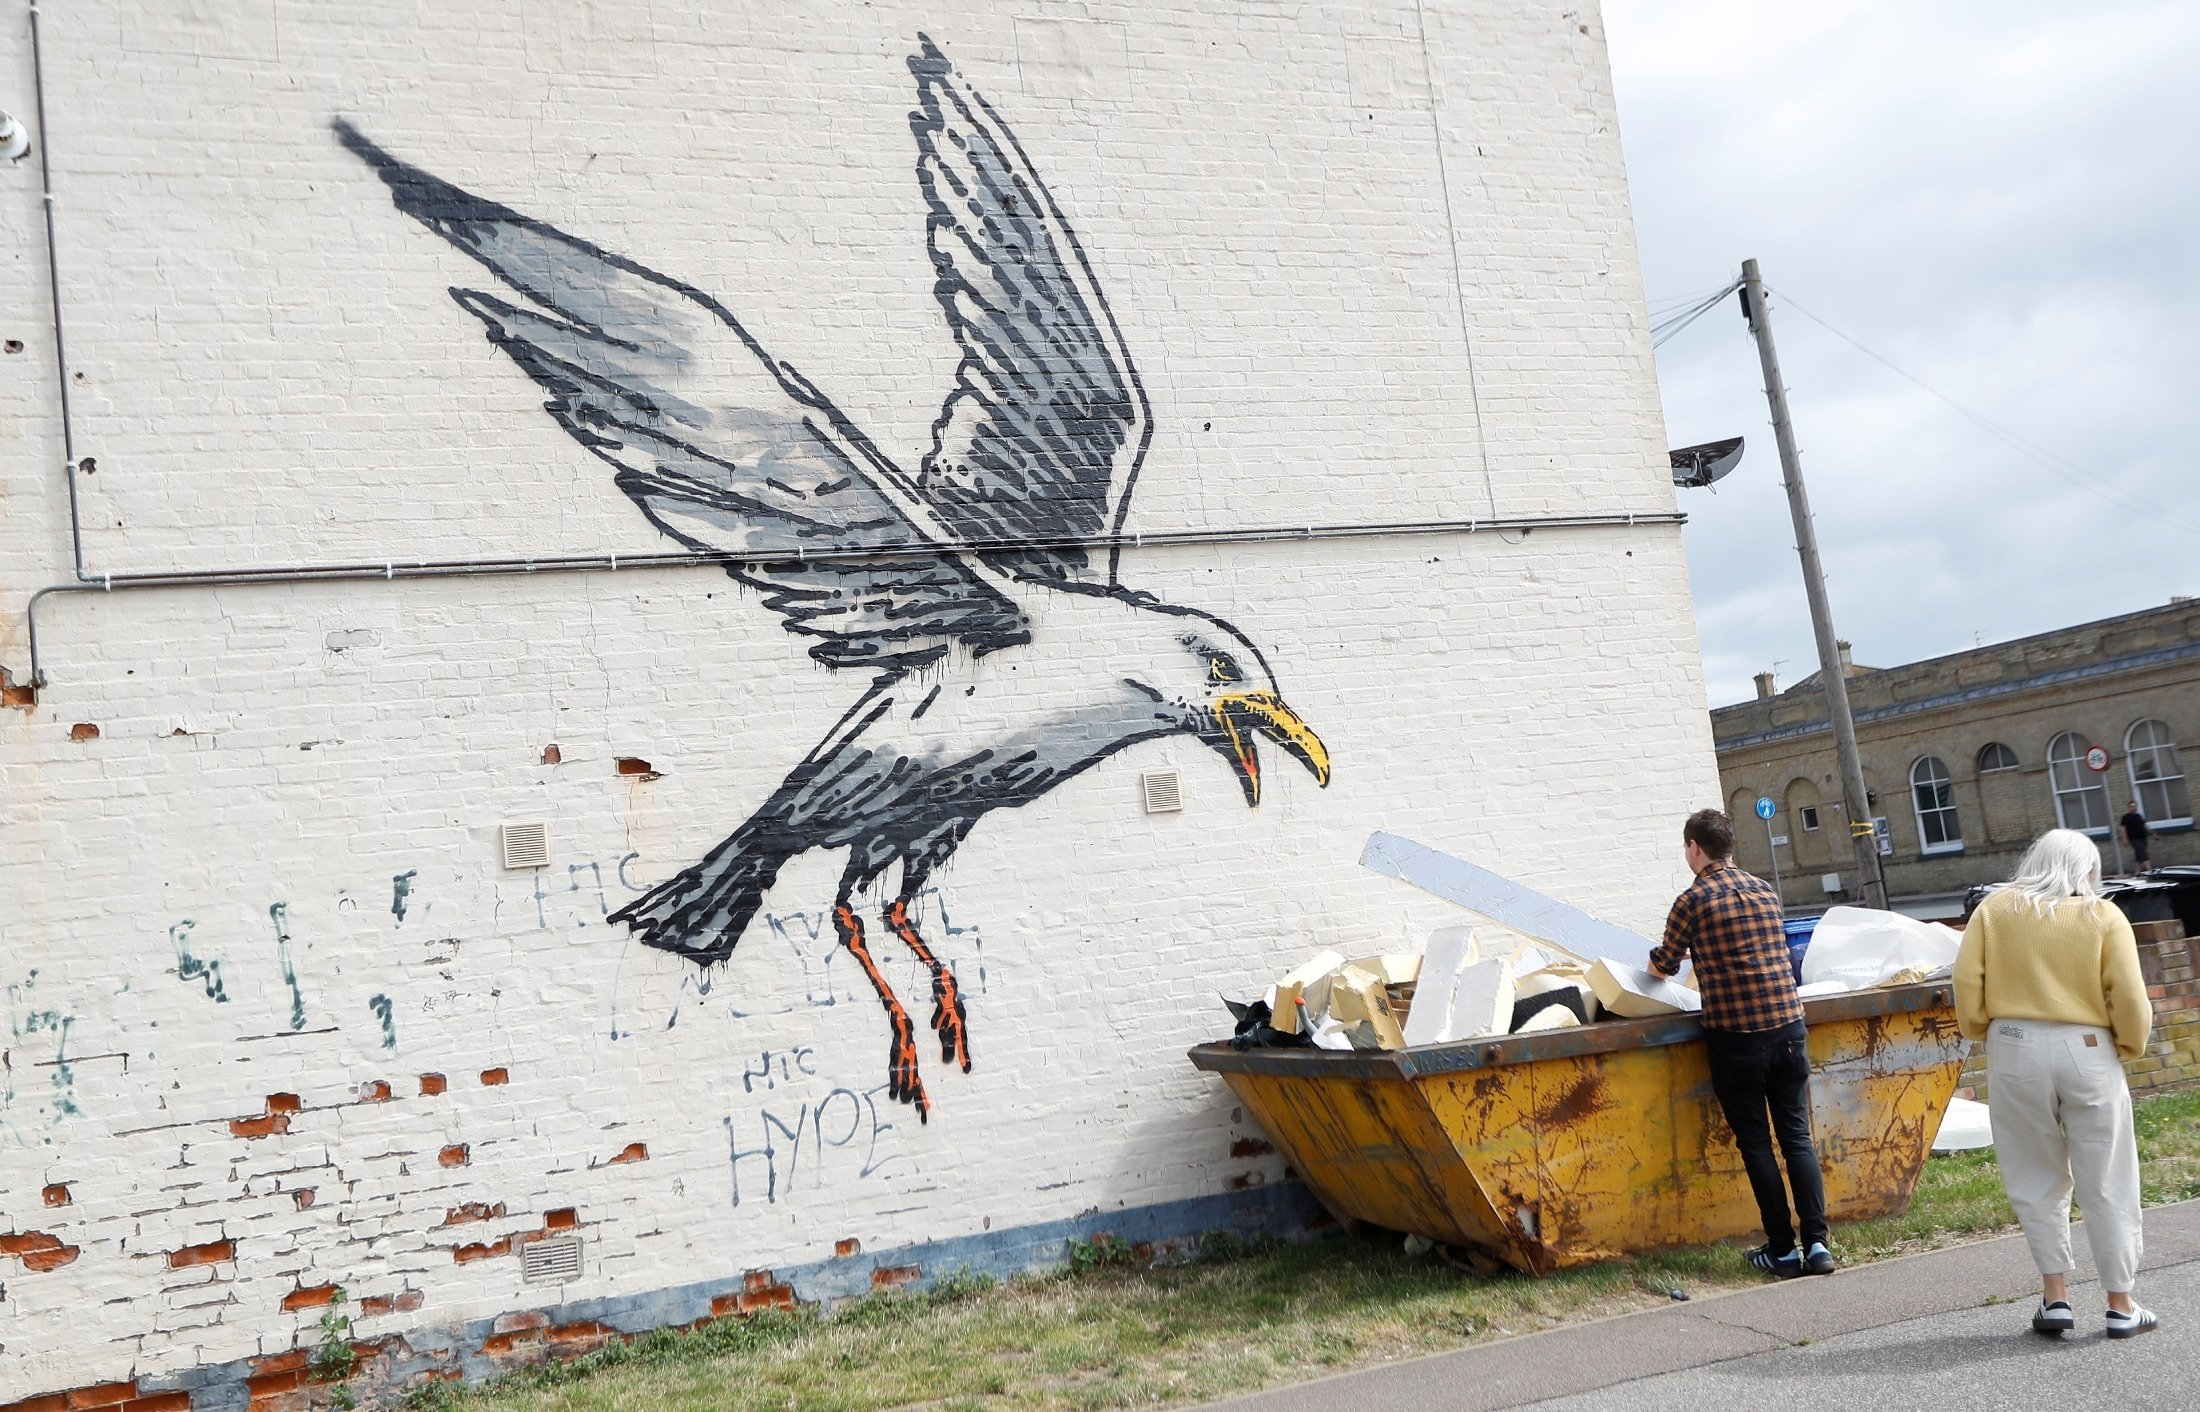 A man interacts with artwork created by Banksy in Lowestoft, U.K., Aug. 8, 2021. (Reuters Photo)